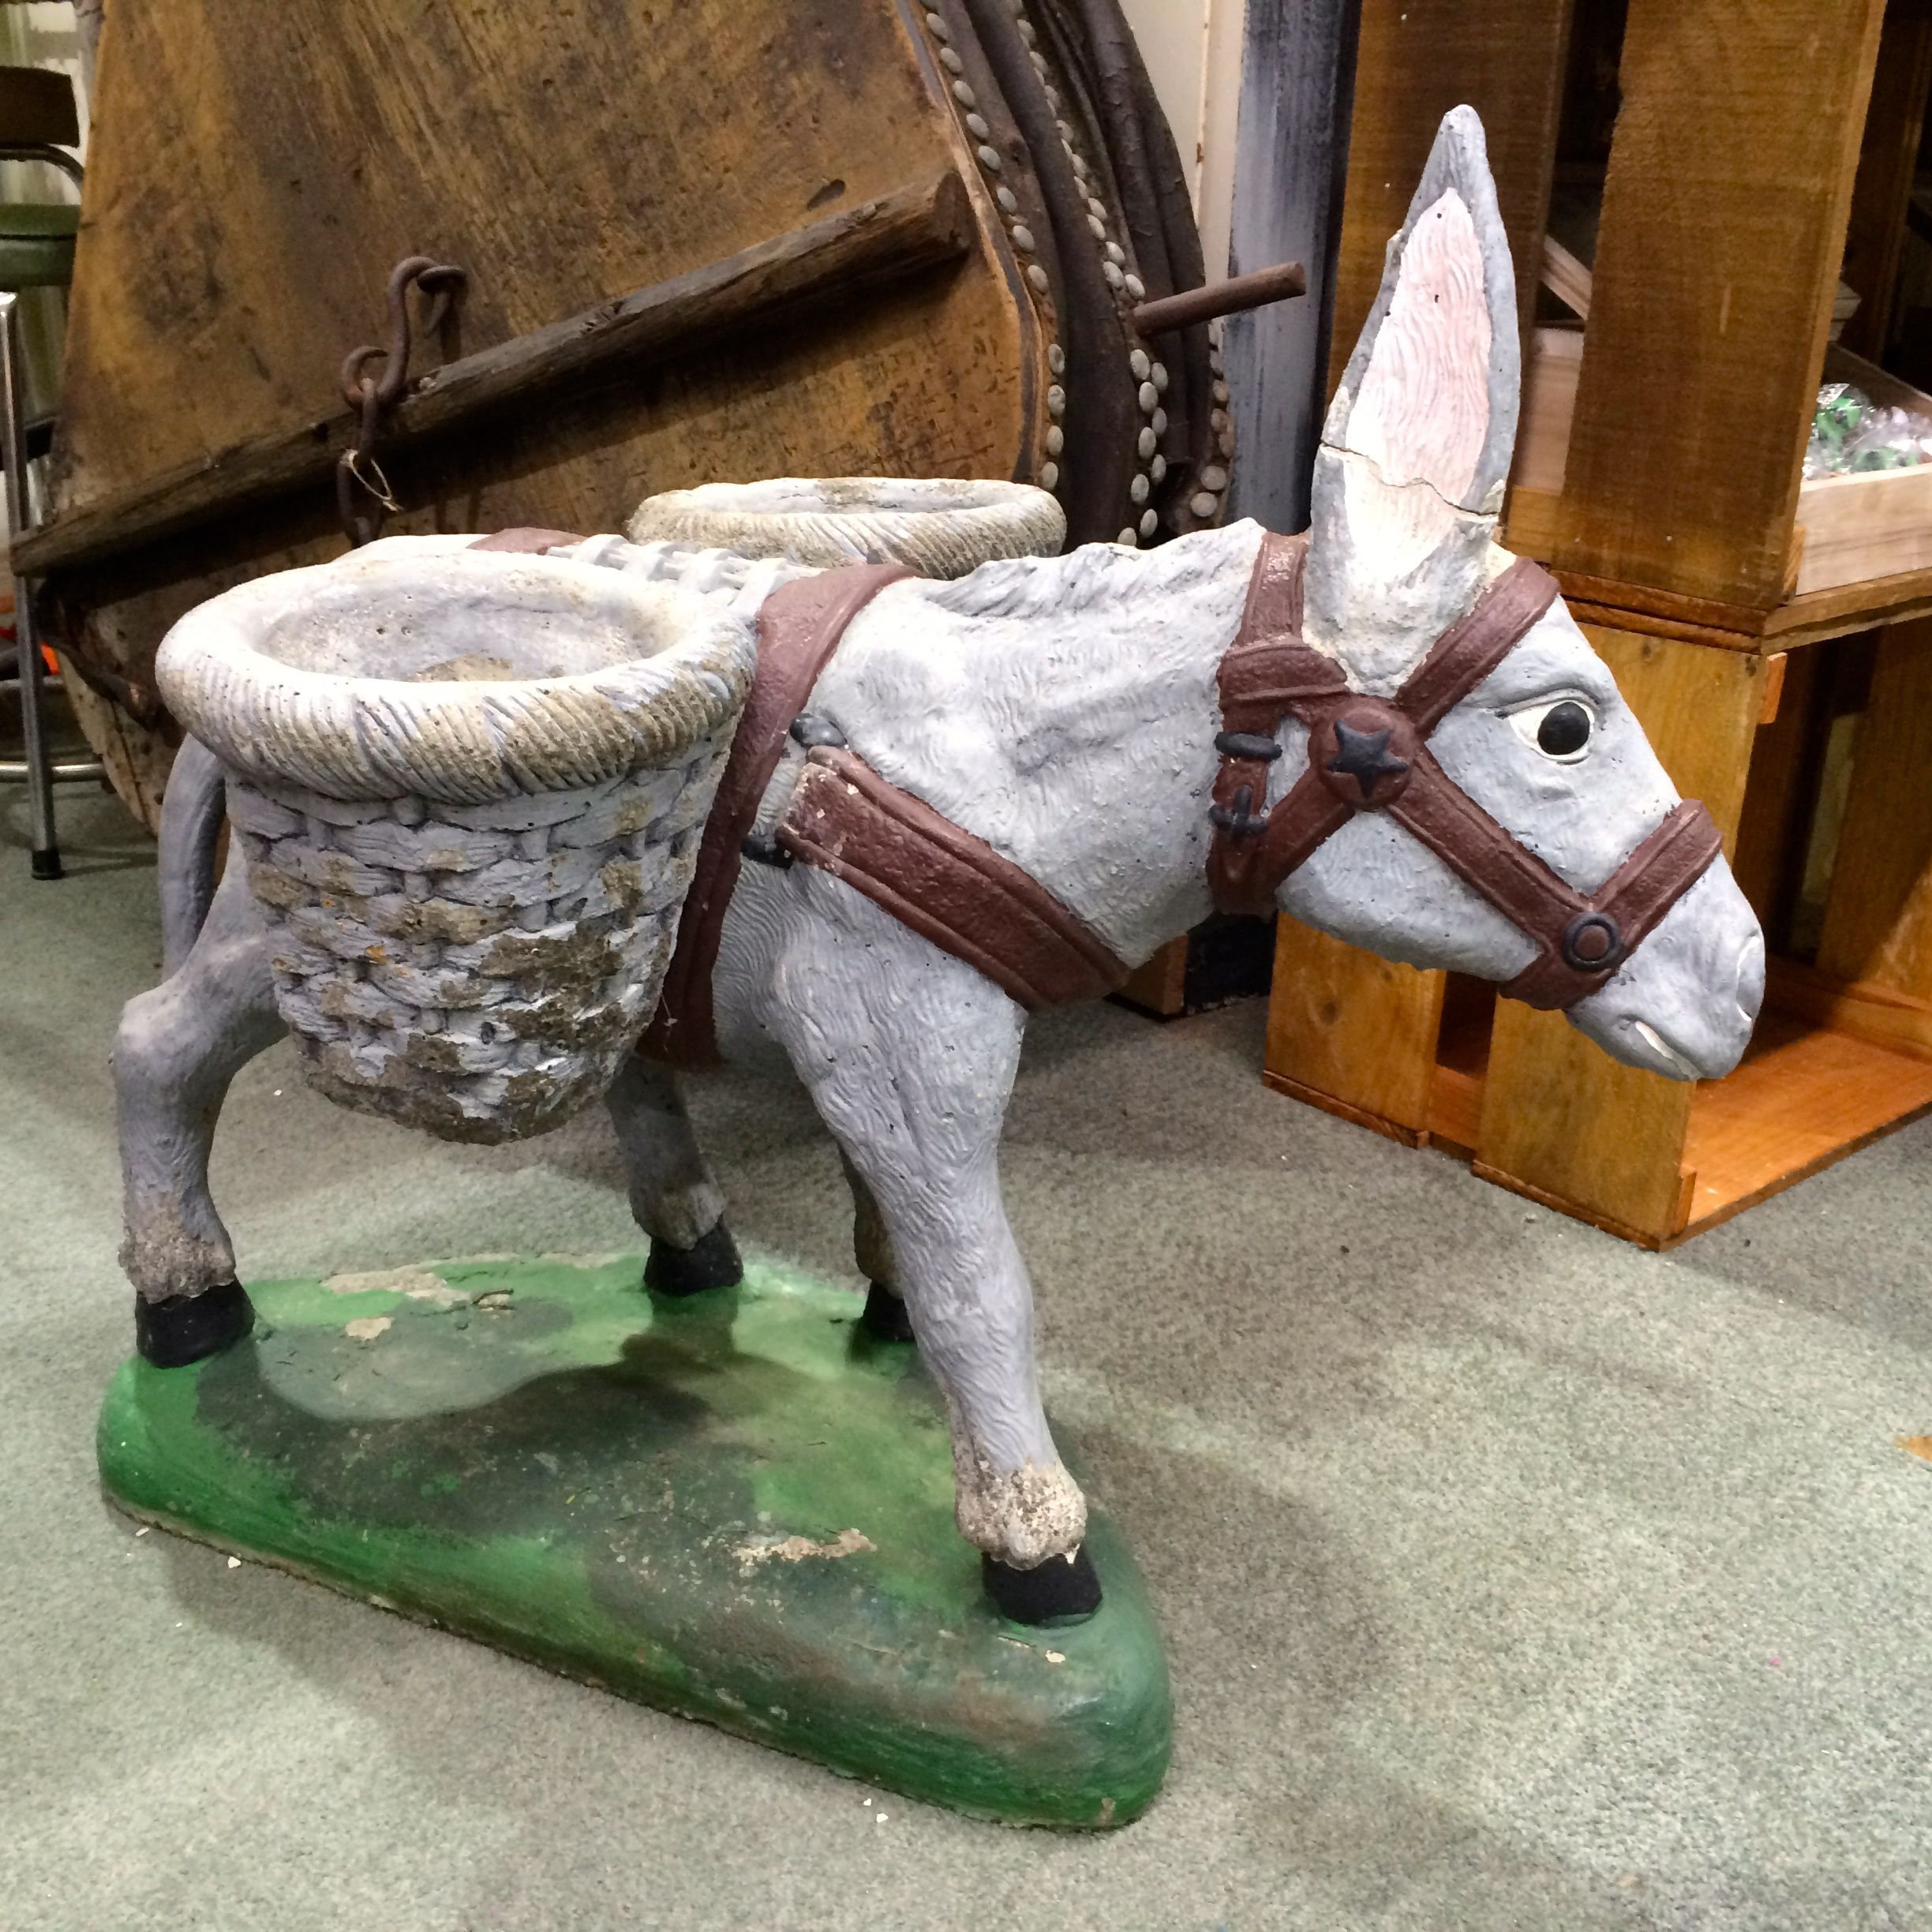 Garden Statues · Rare Vintage Concrete Donkey Planter, Roadside Retro, The  Amazing Mill Markets, Daylesford Concrete